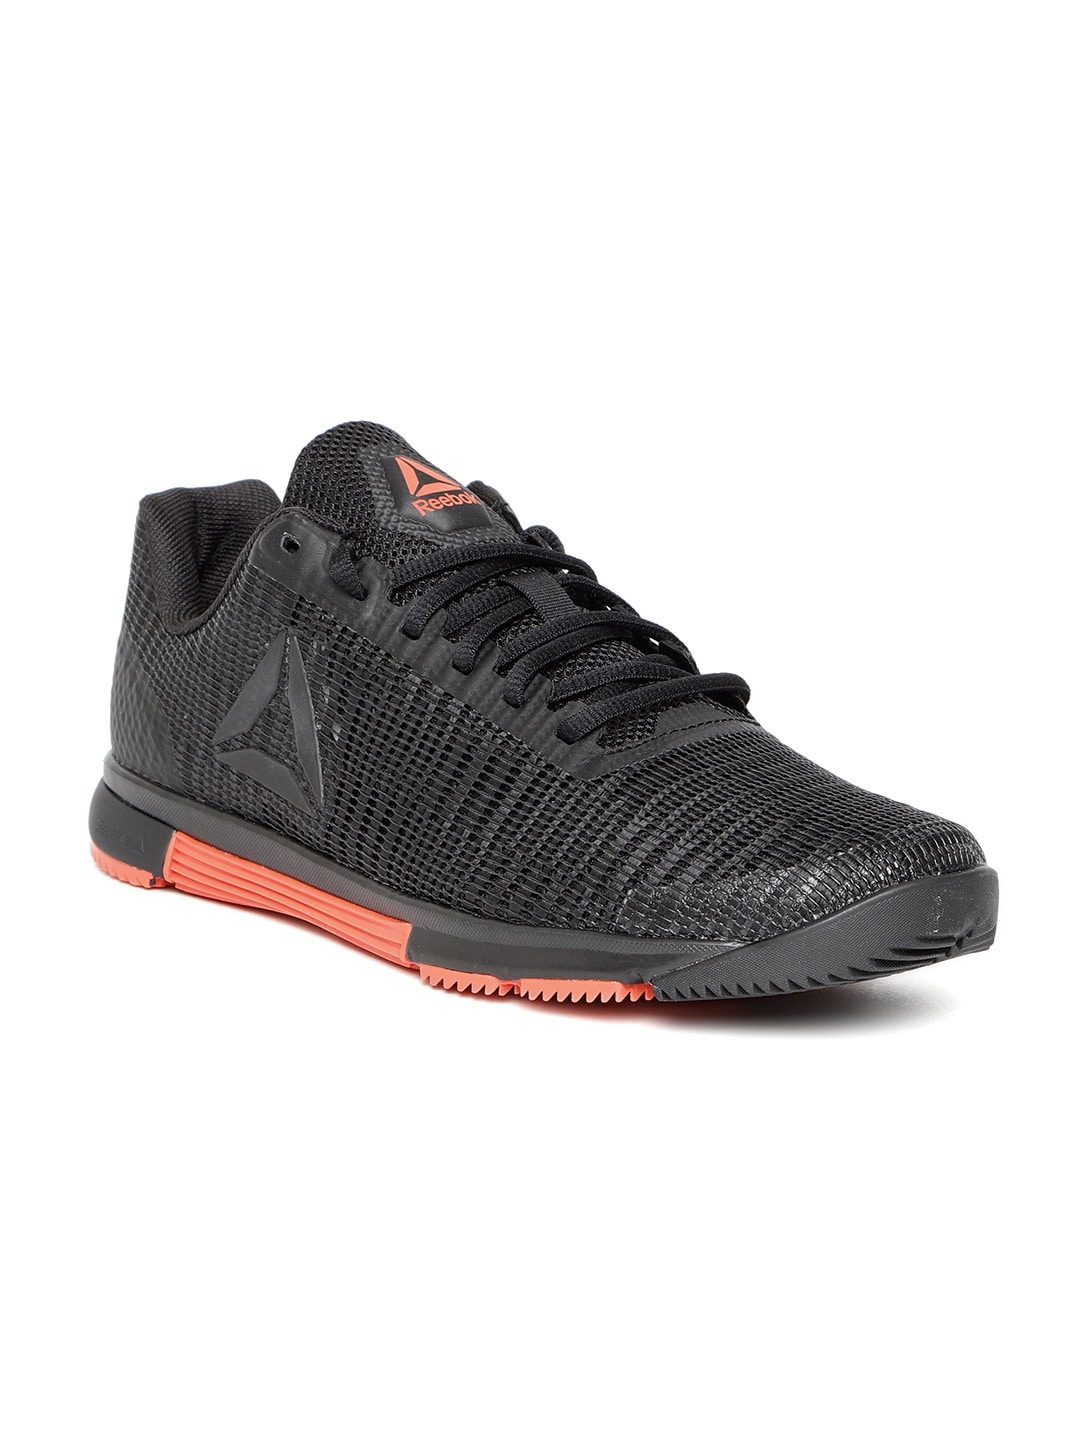 3d13d168421d Reebok Men Training Shoes - Buy Reebok Men Training Shoes online in India